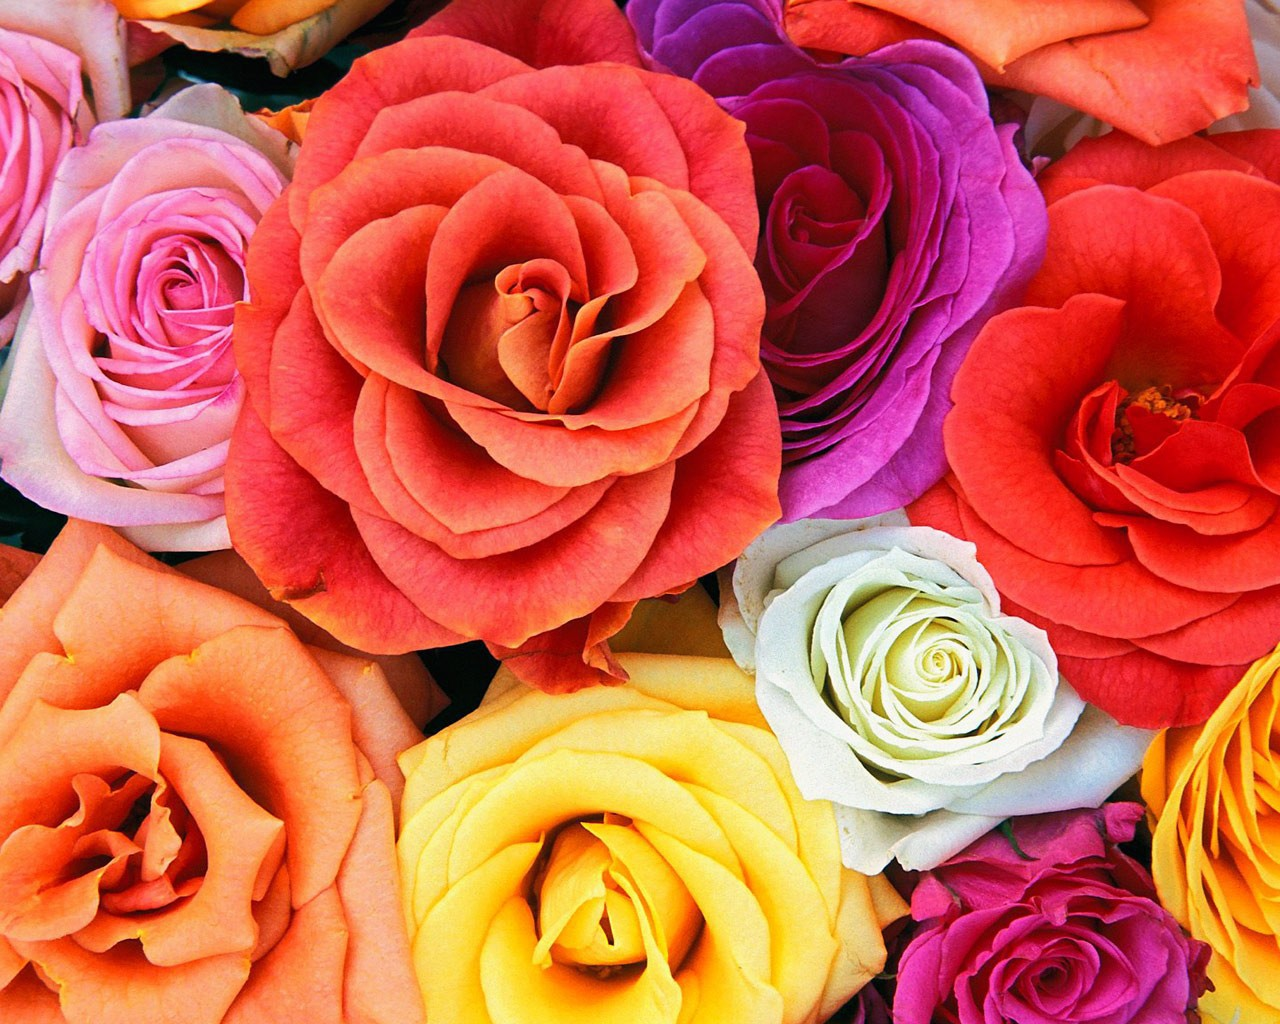 original wallpaper download: Colored roses - 1280x1024